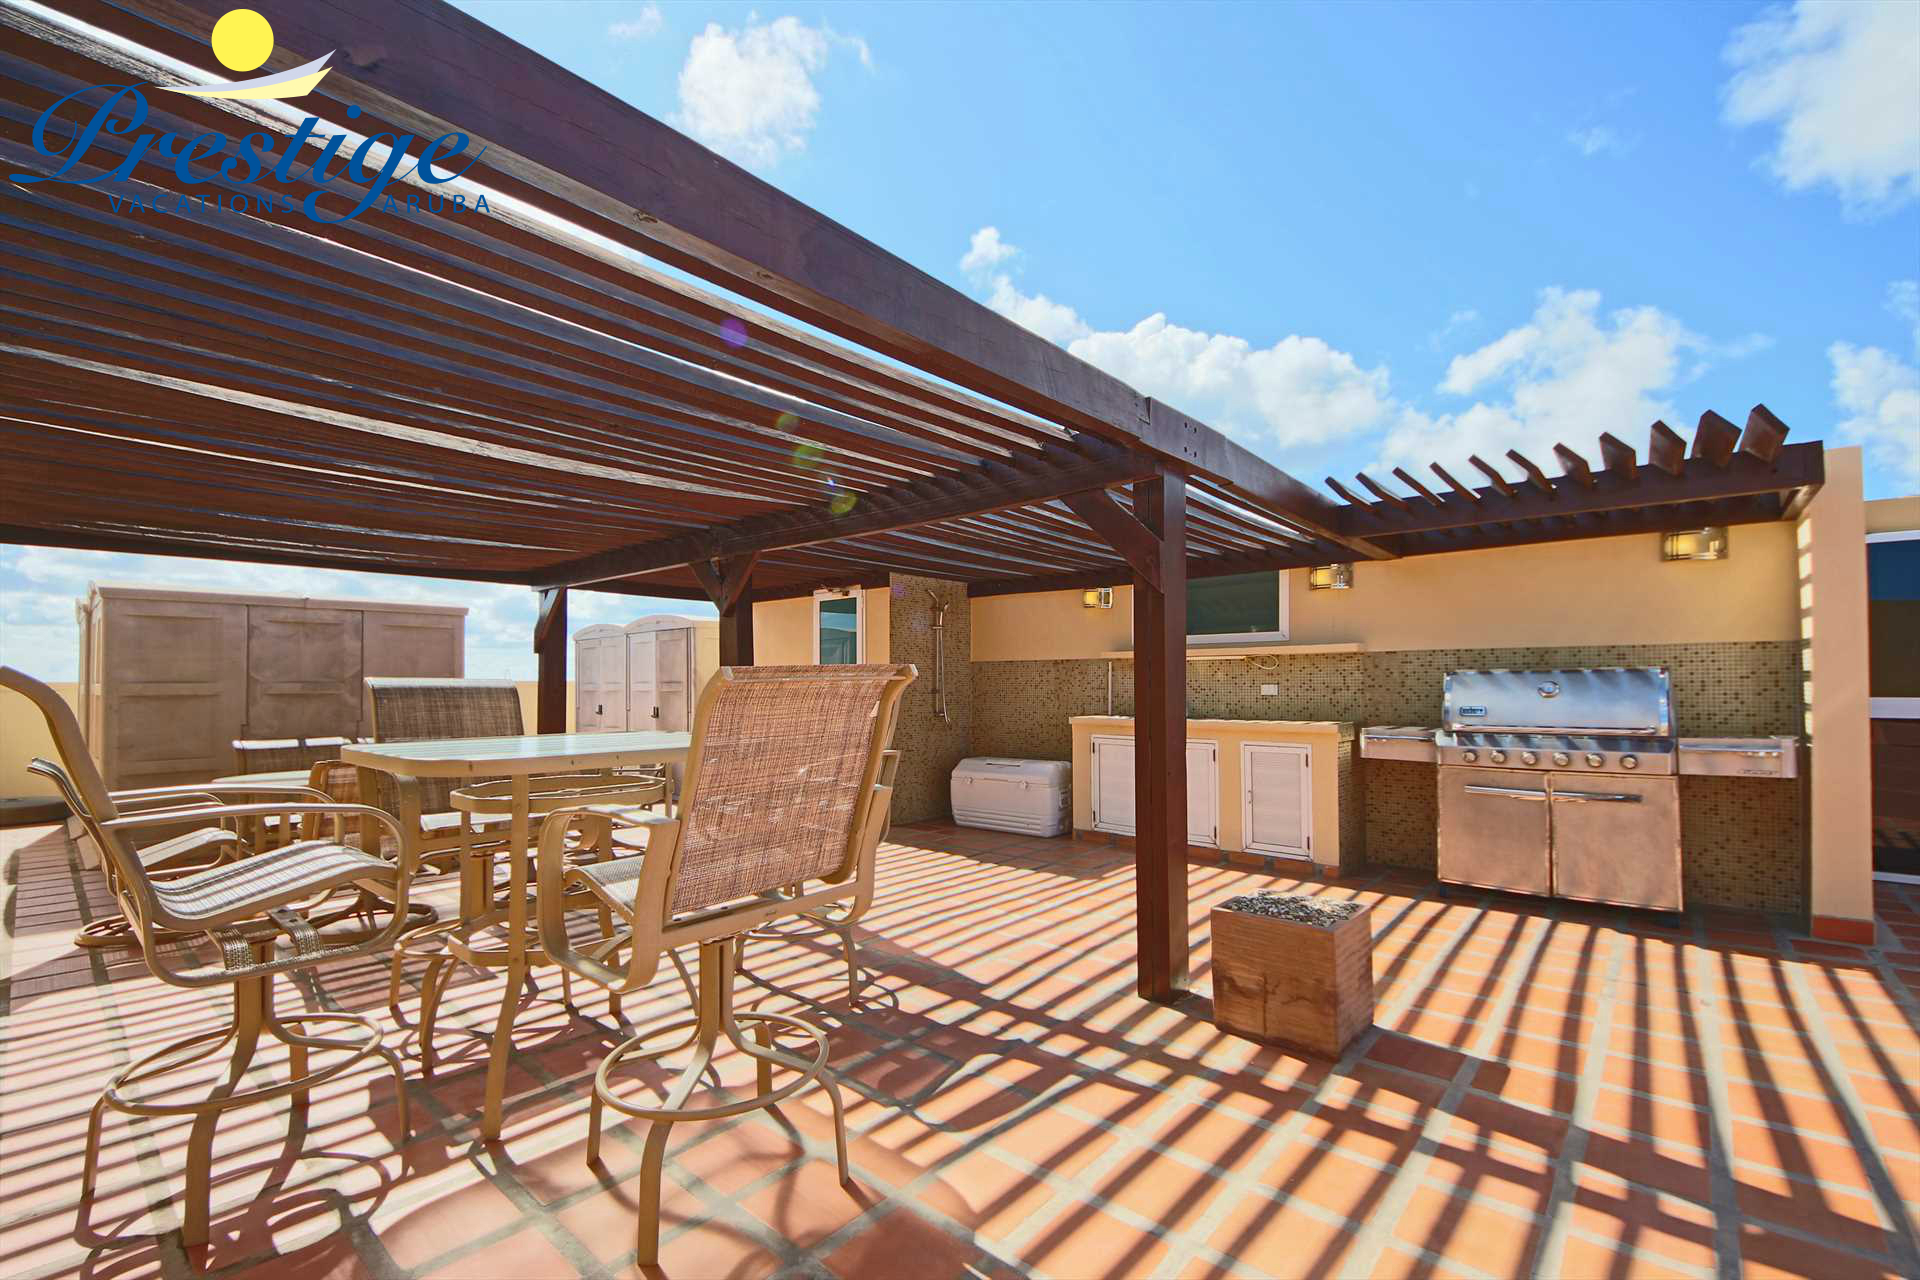 Semi covered rooftop with outdoor kitchen with a sink and large BBQ-grill